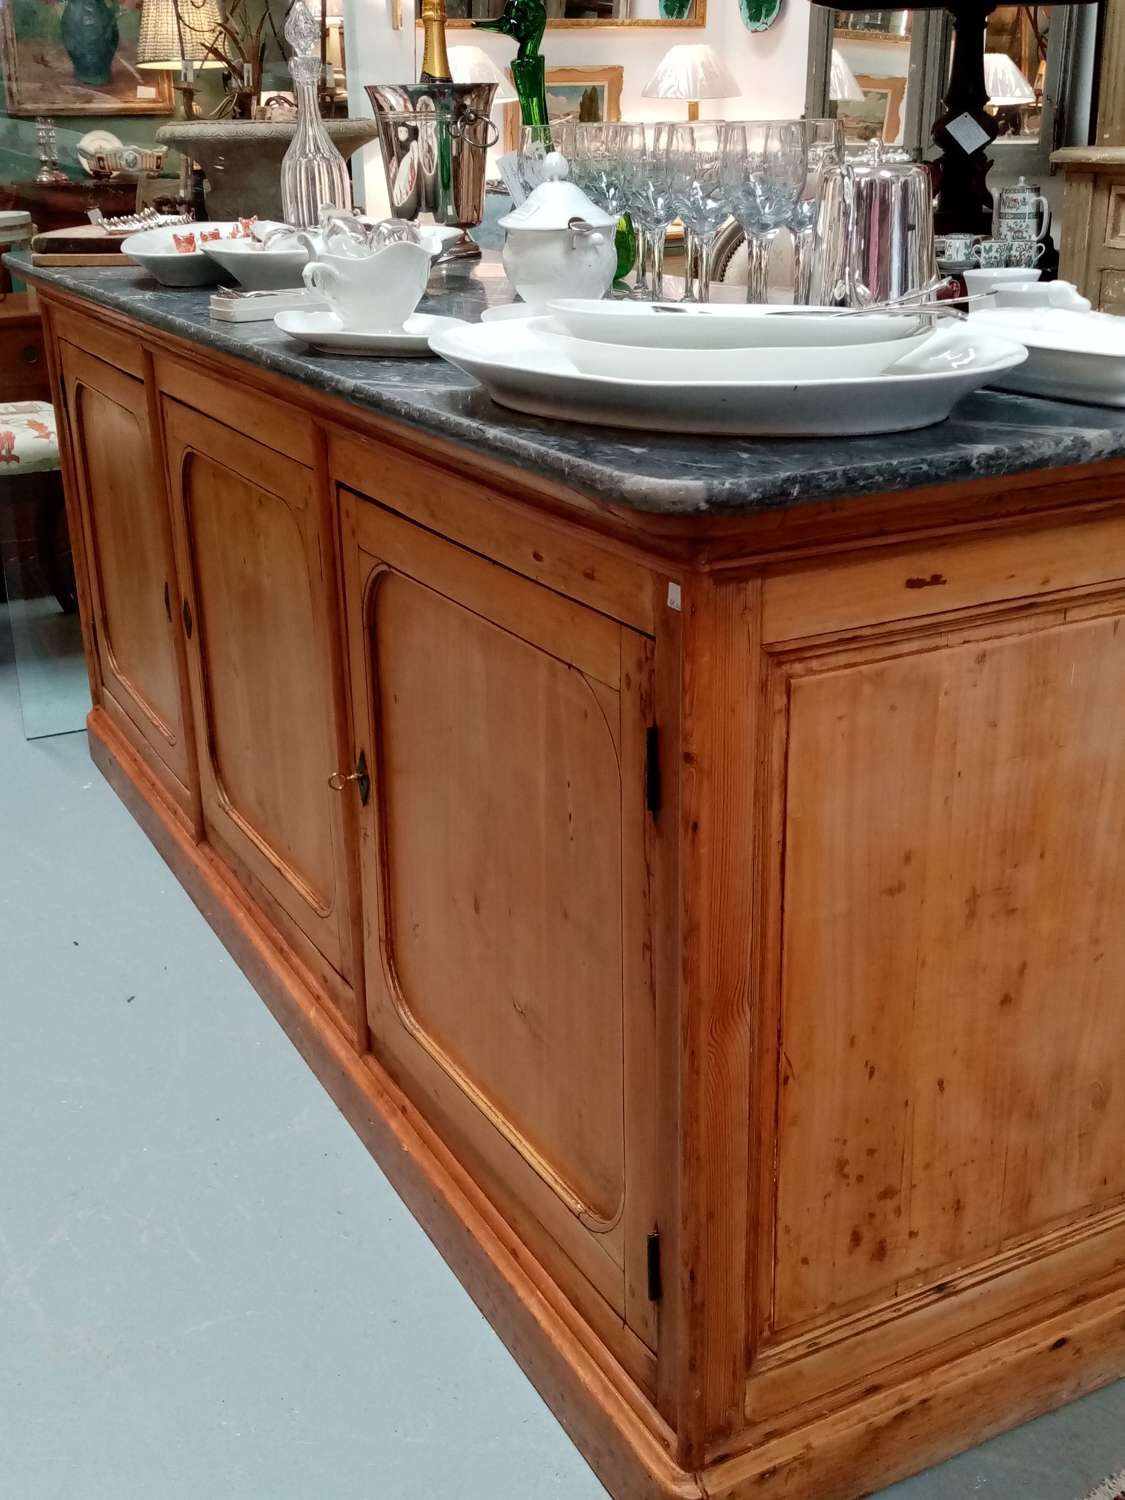 Antique pine counter or kitchen island